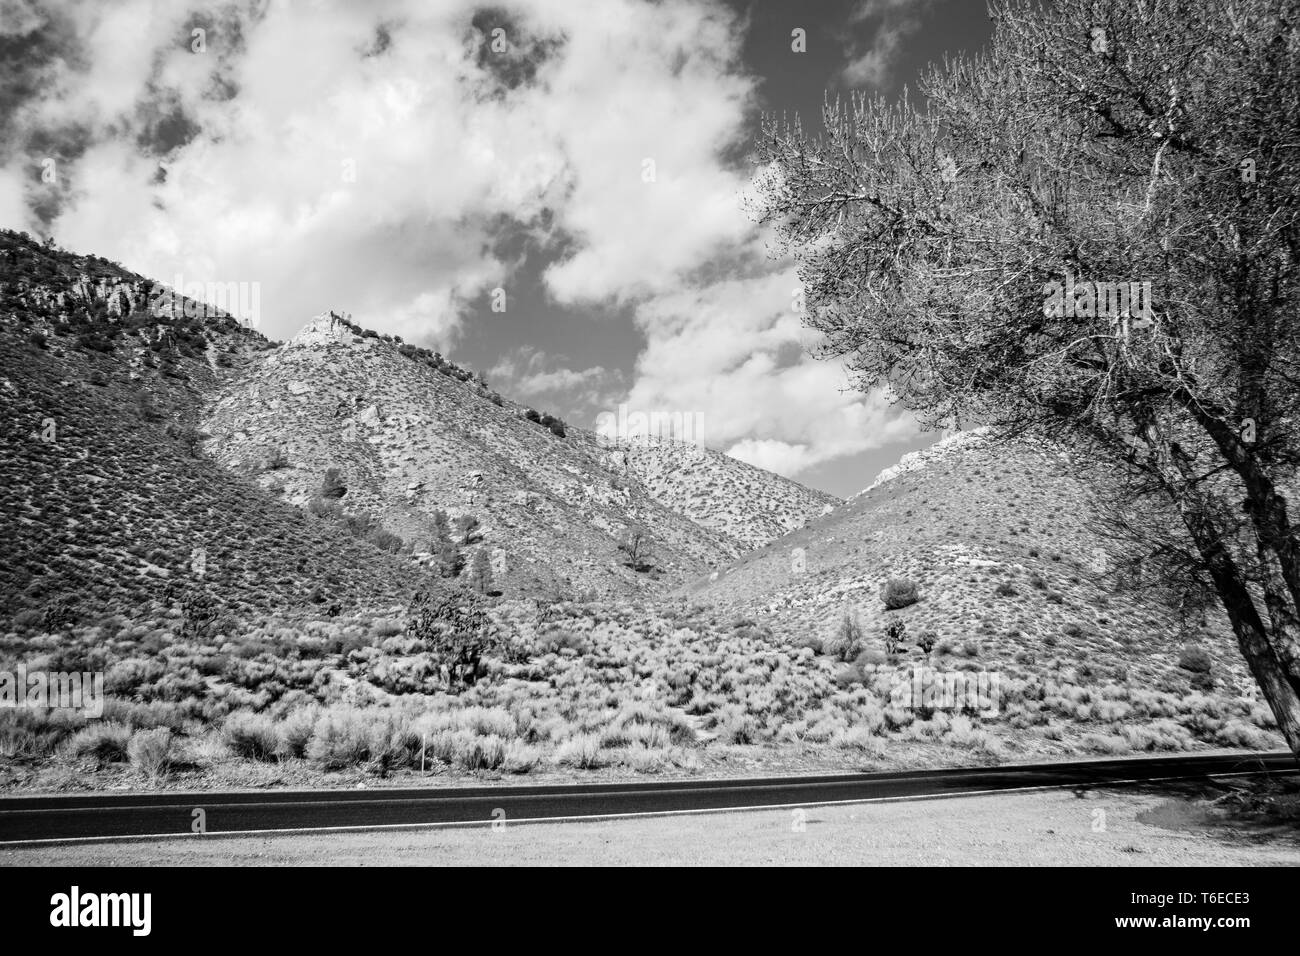 Black and white, mountains side with bushes, road and tree. Sky with white fluffy clouds. - Stock Image